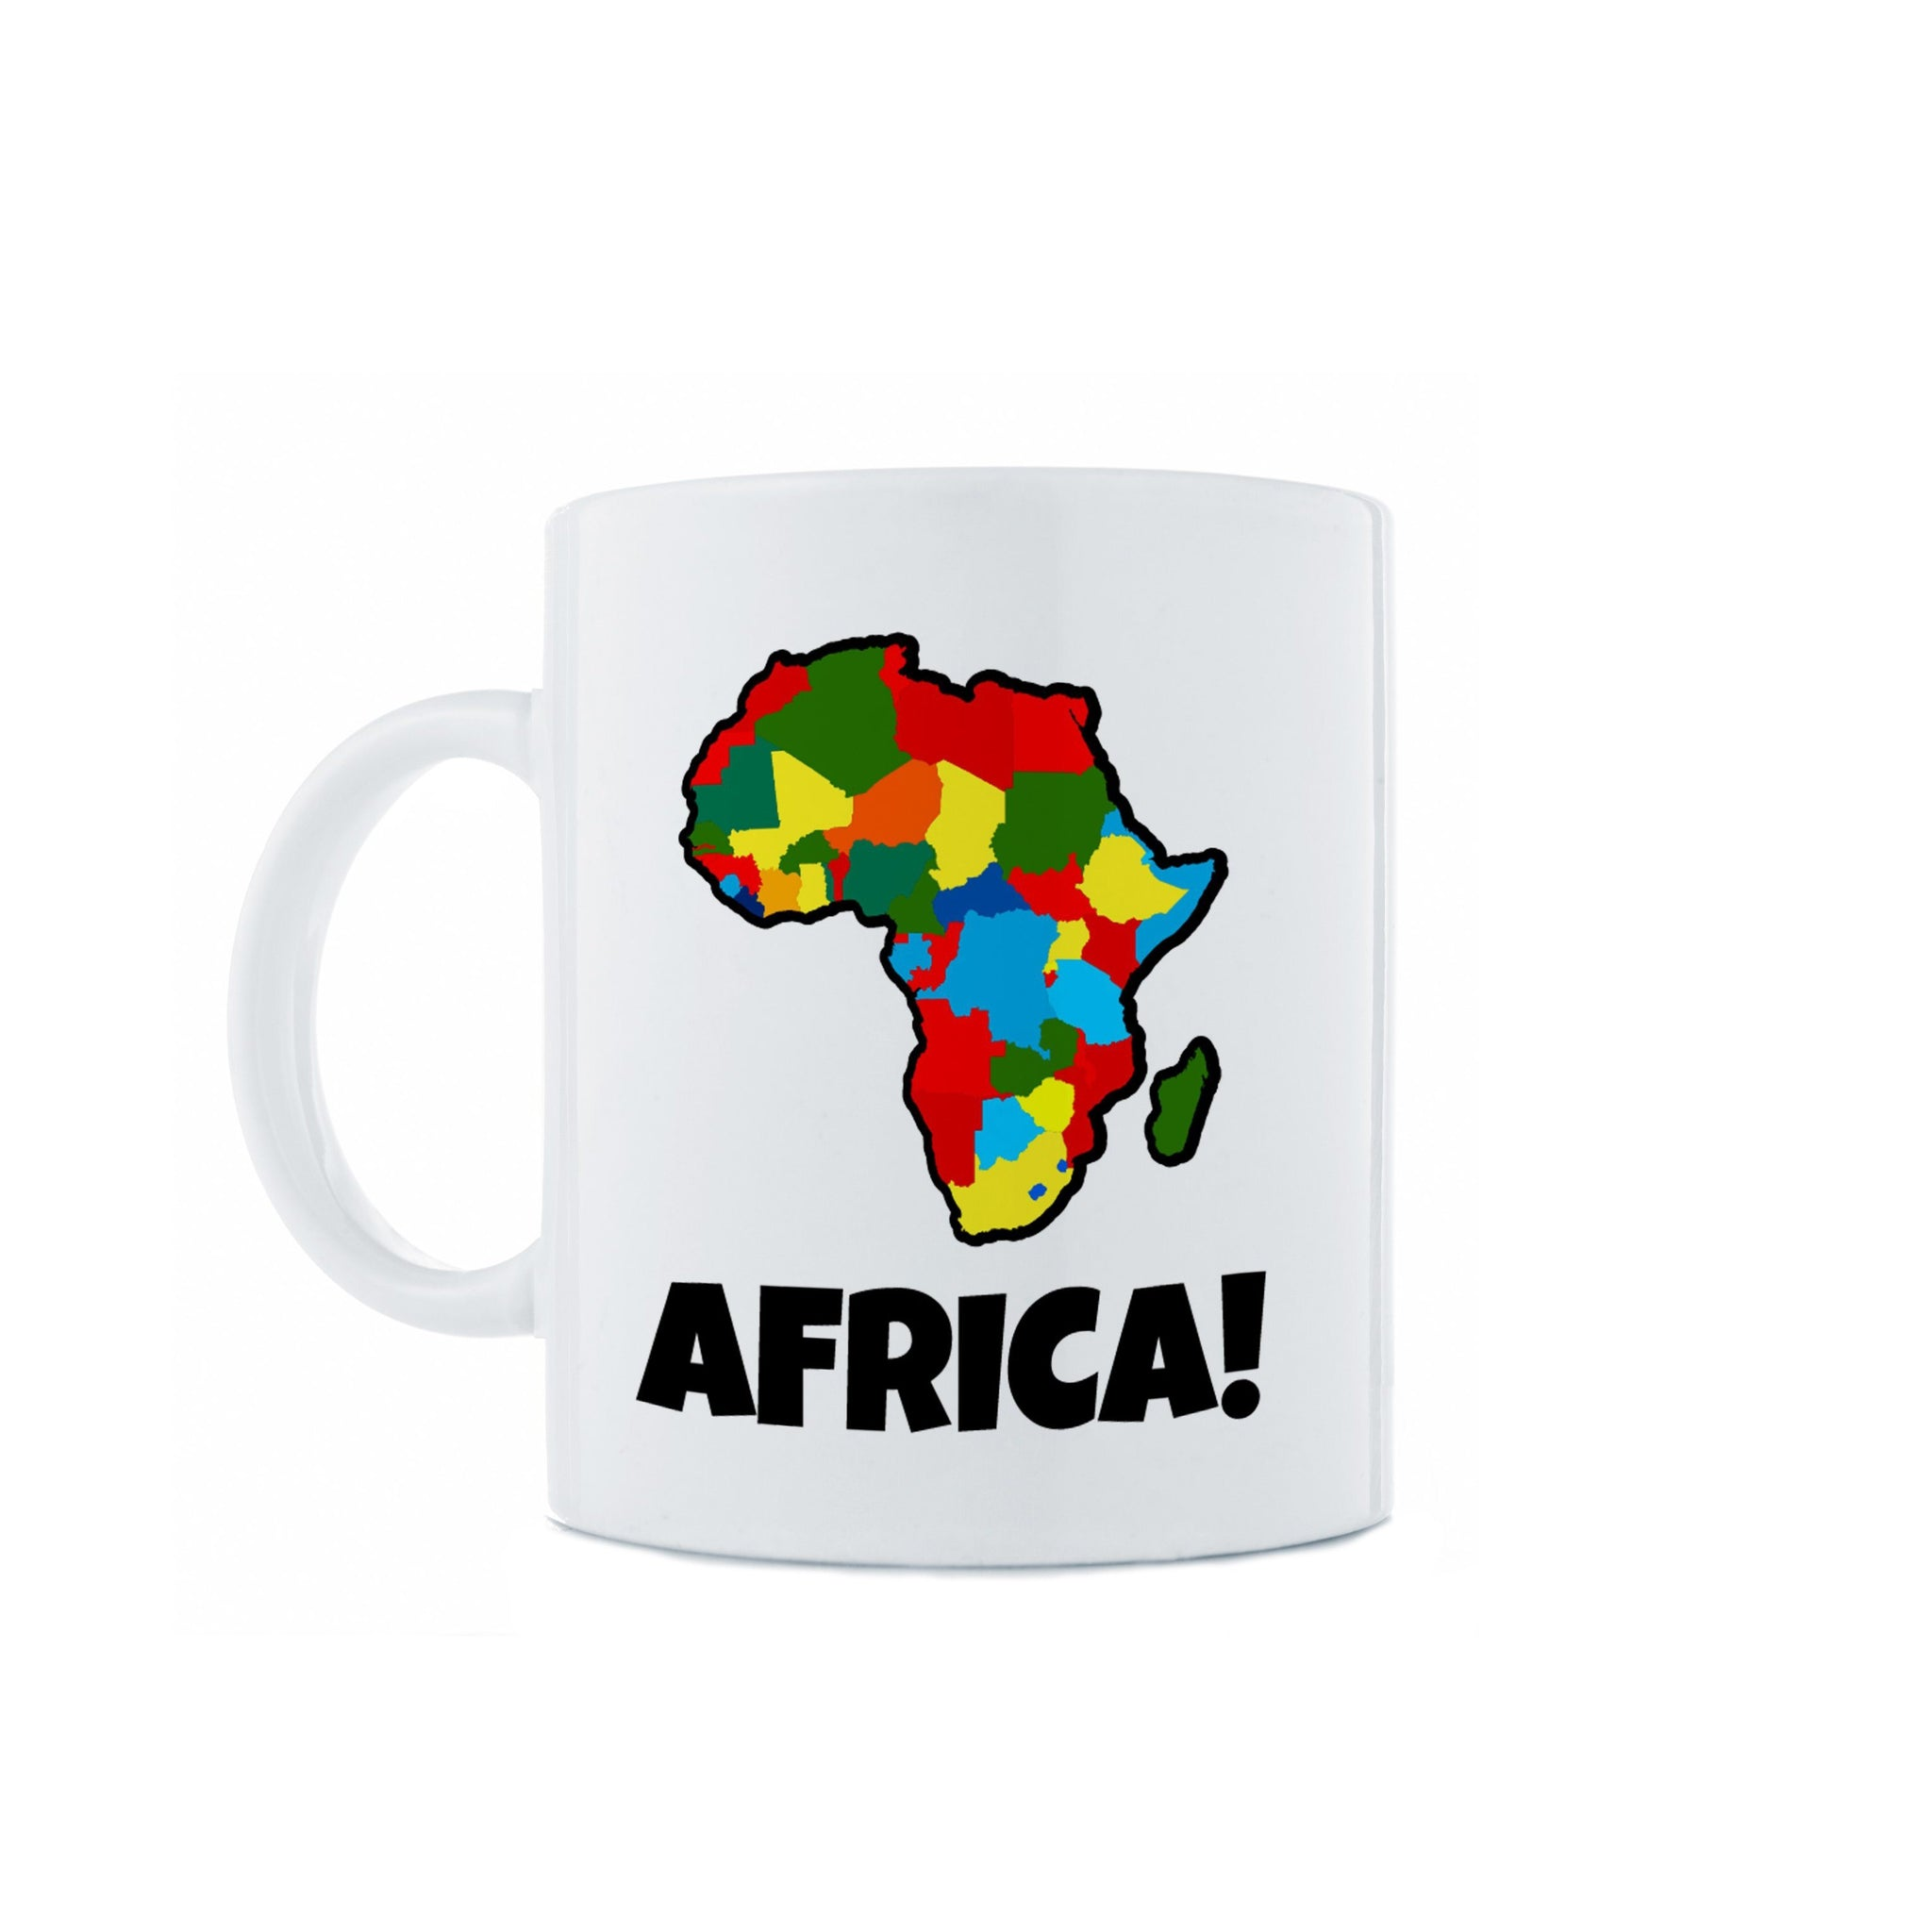 Africa Many Colors Mug